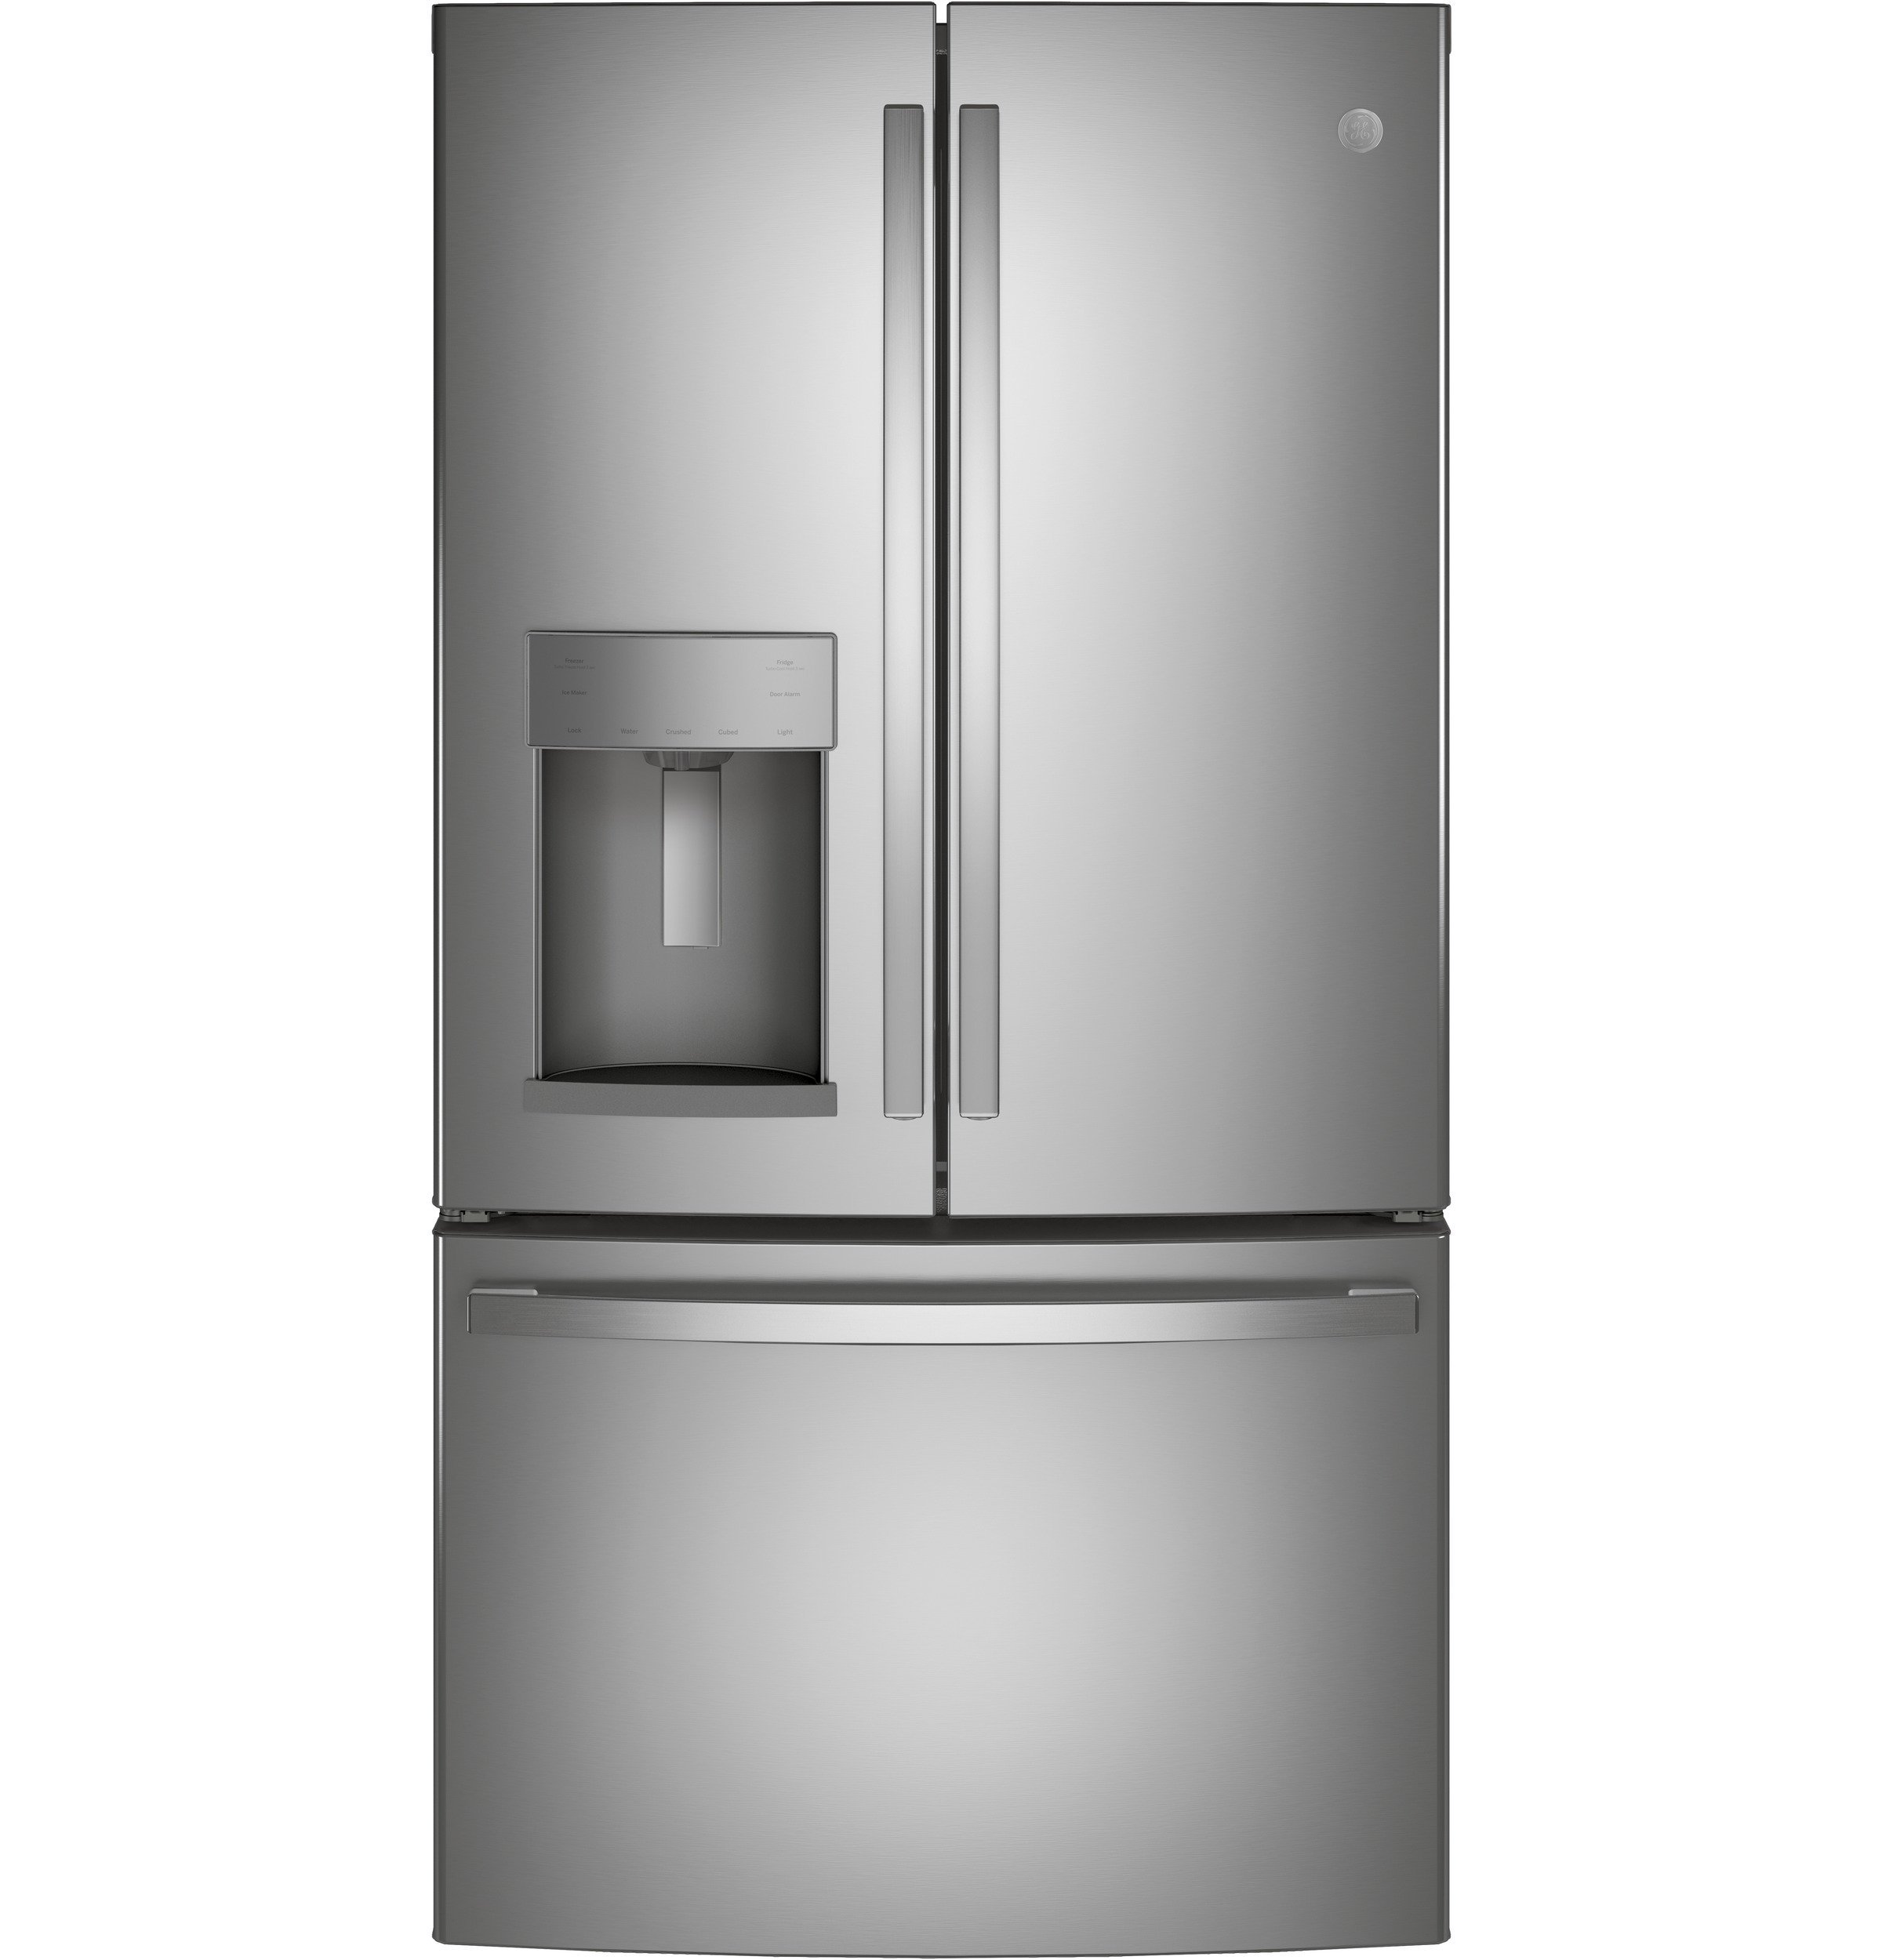 GE GE® ENERGY STAR® 27.7 Cu. Ft. Fingerprint Resistant French-Door Refrigerator